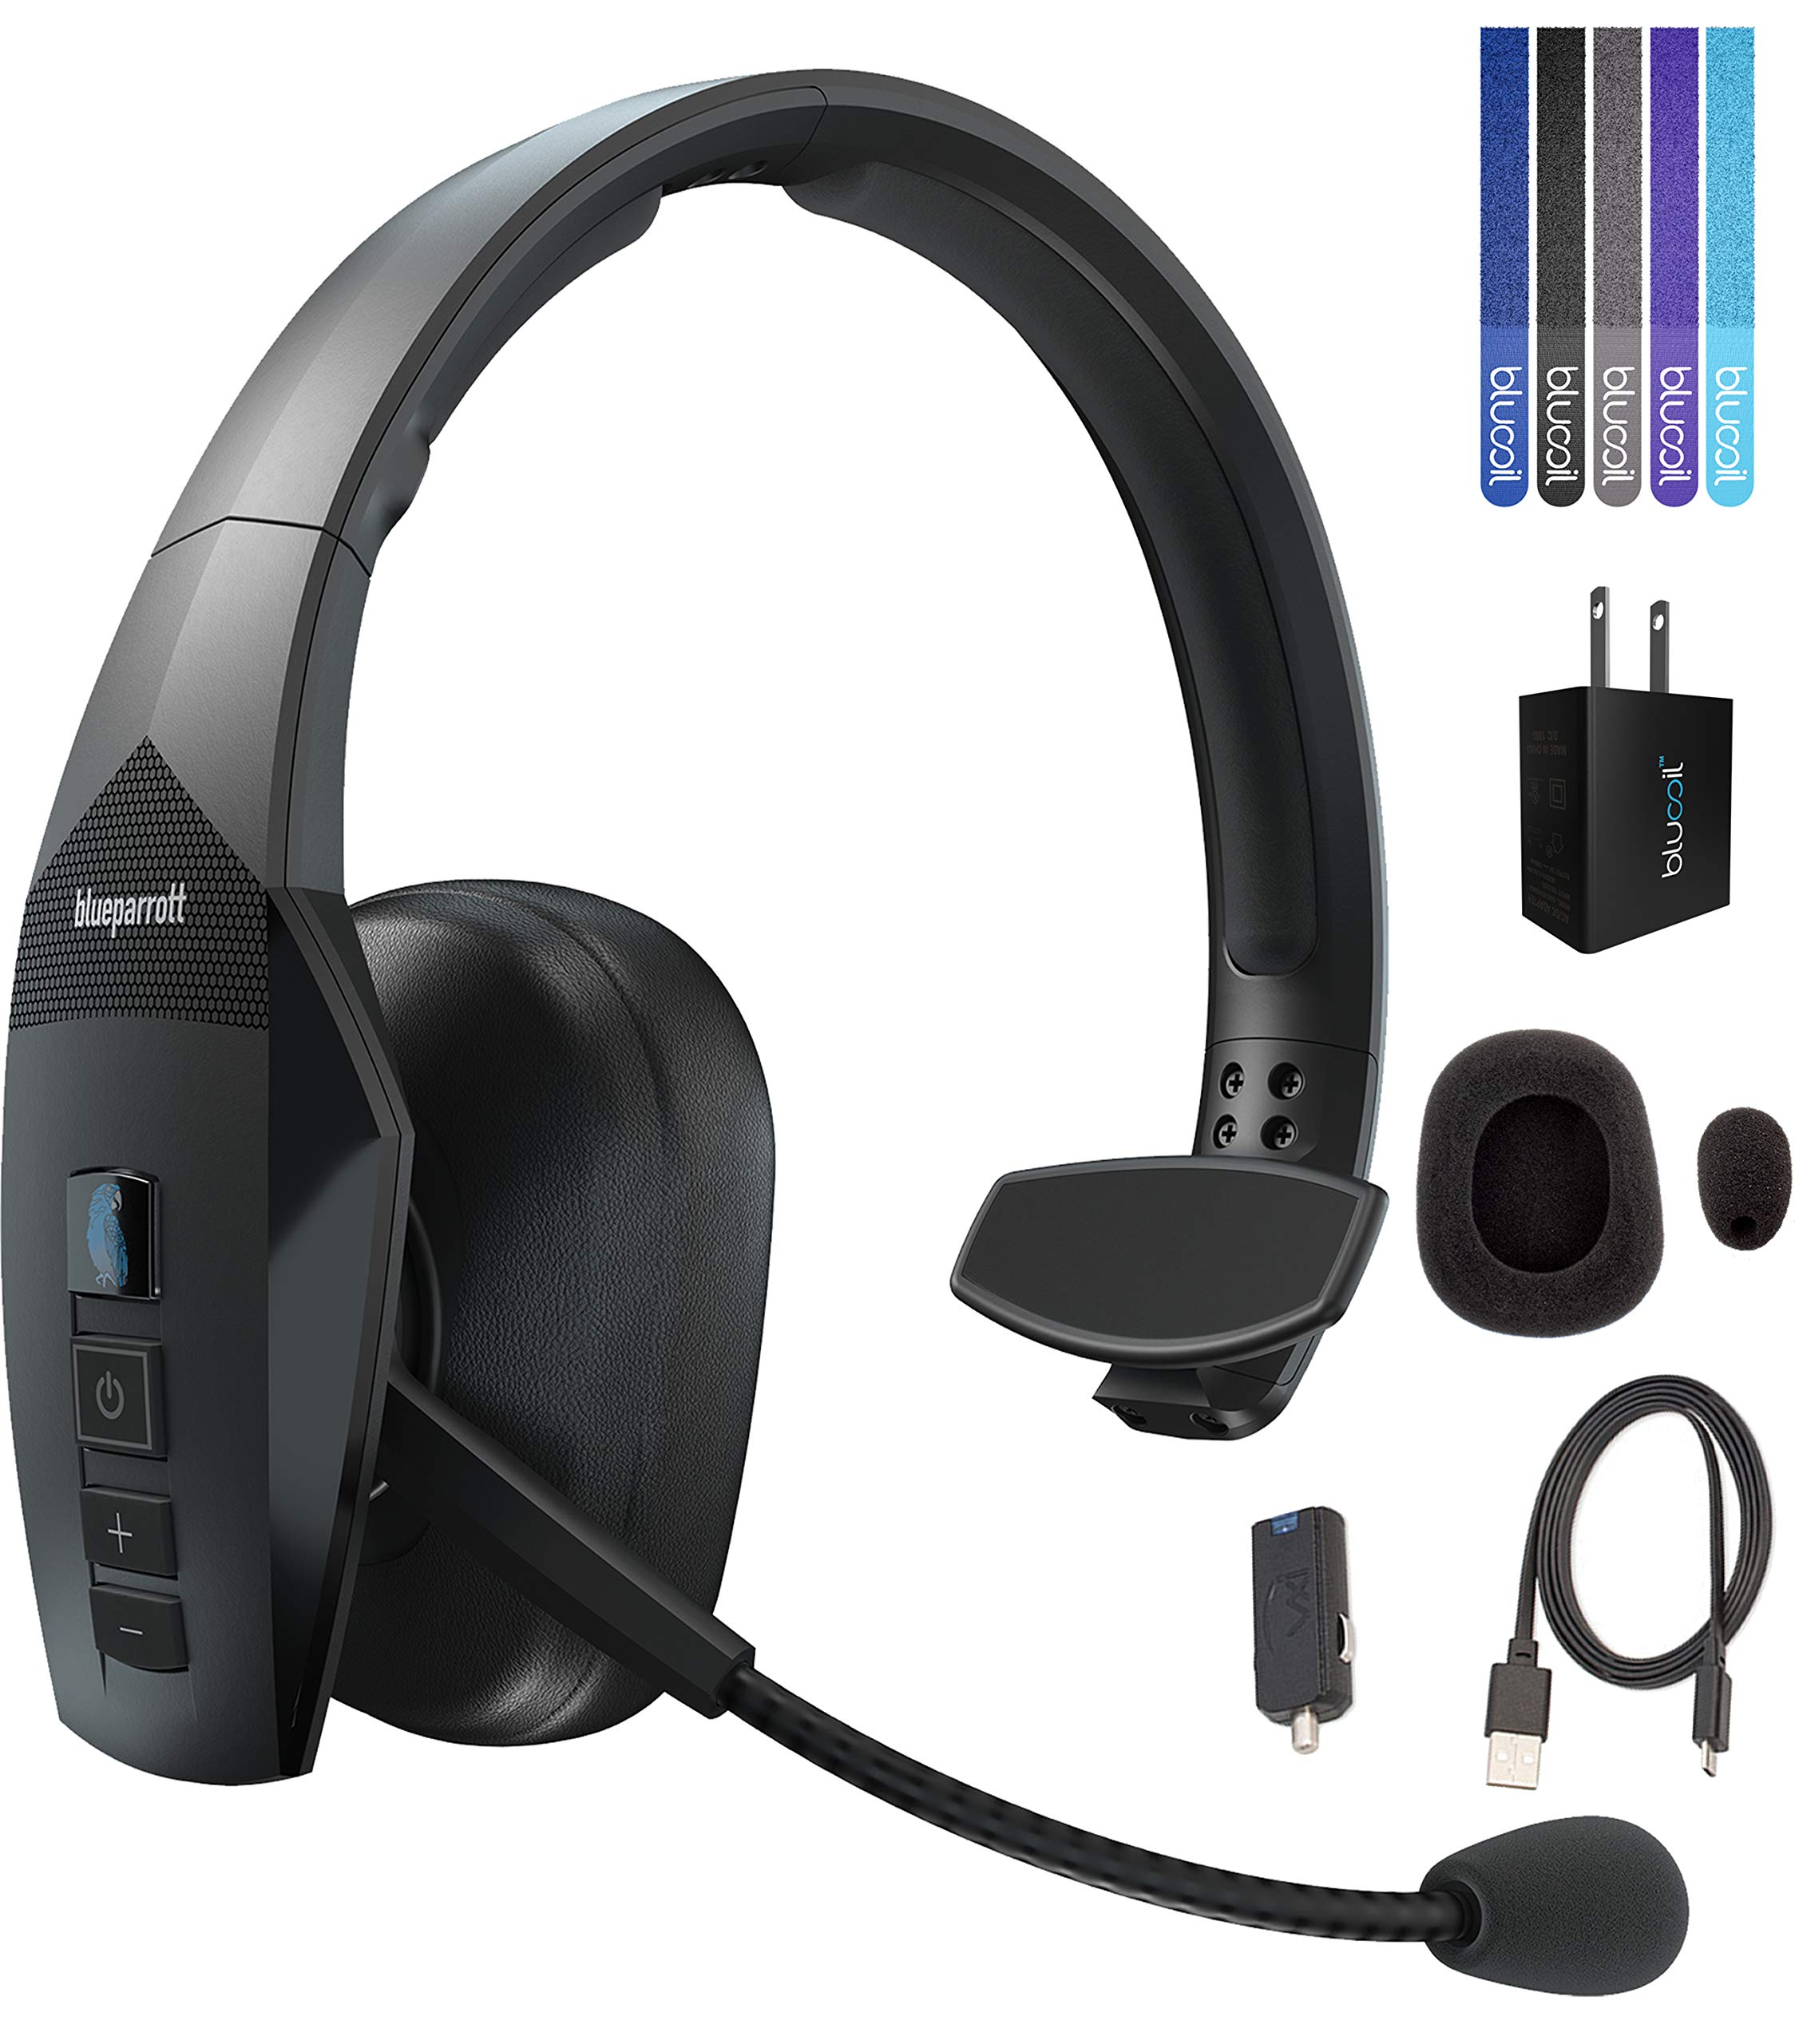 VXI BlueParrott B550-XT Noise Canceling Bluetooth Headset Bundle with Blucoil USB Wall Adapter and 5-Pack of Reusable Cable Ties by Blucoil